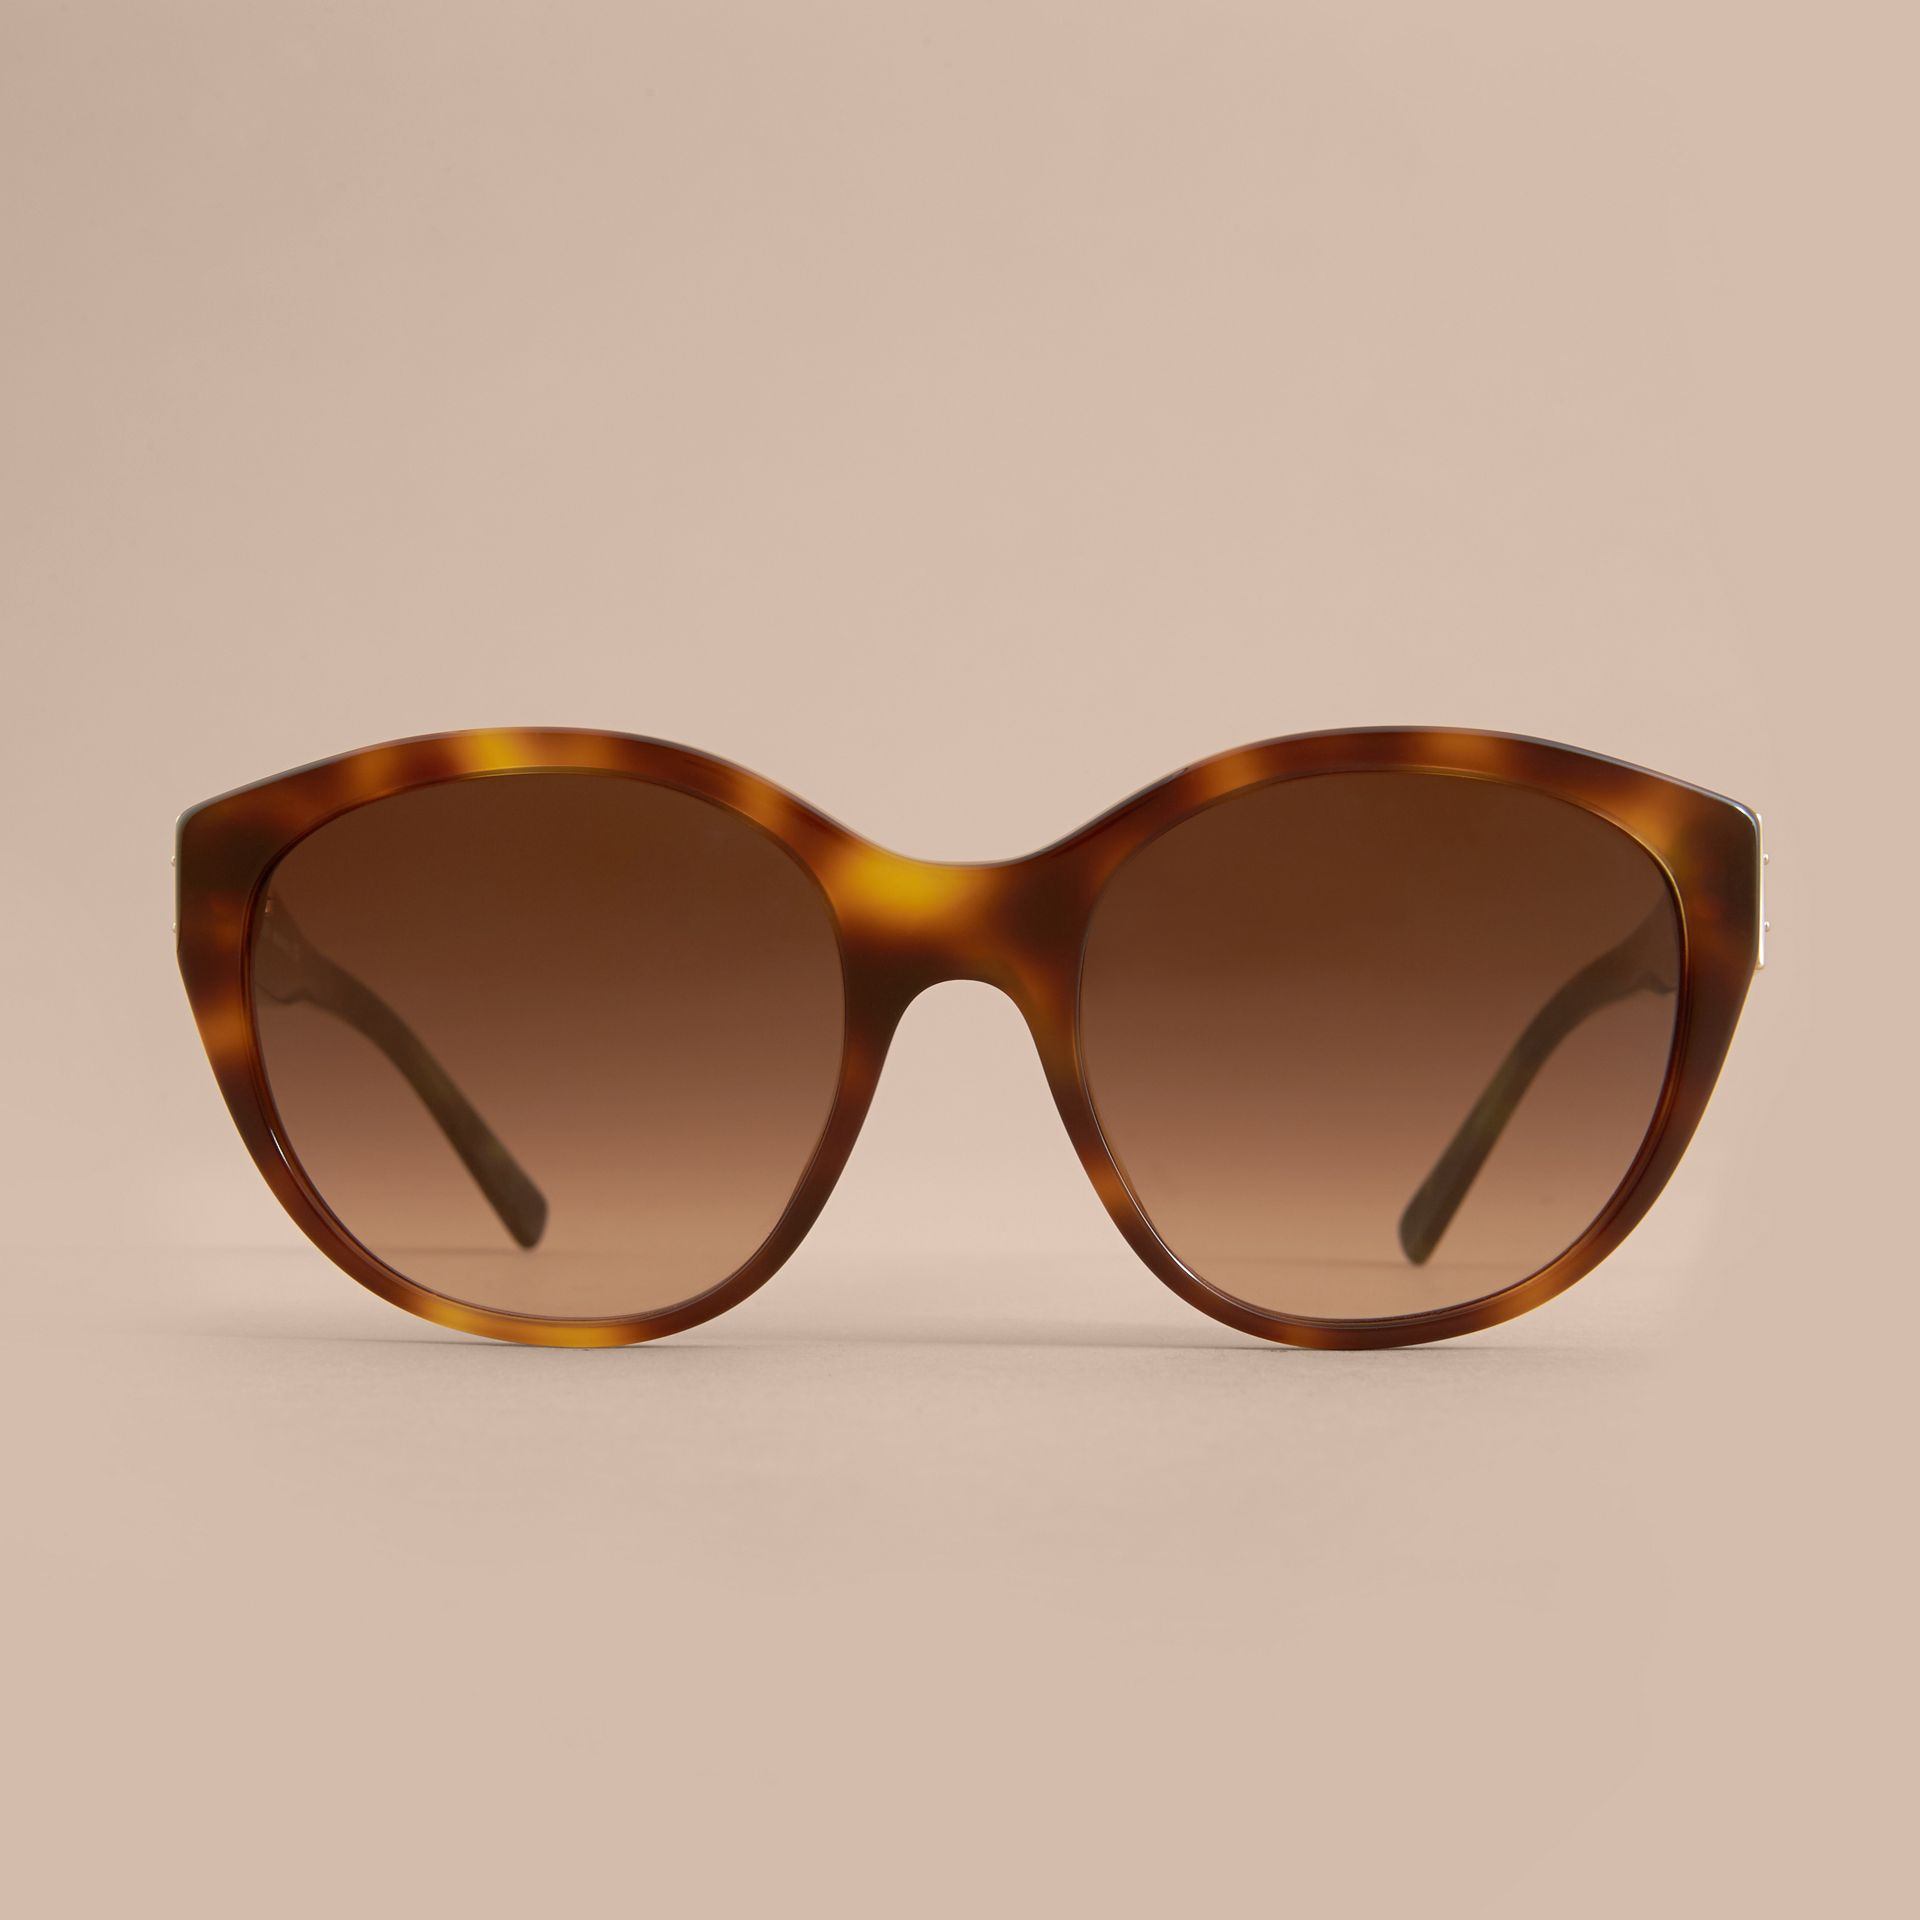 Buckle Detail Round Frame Sunglasses in Tortoise Green - Women | Burberry Canada - gallery image 3